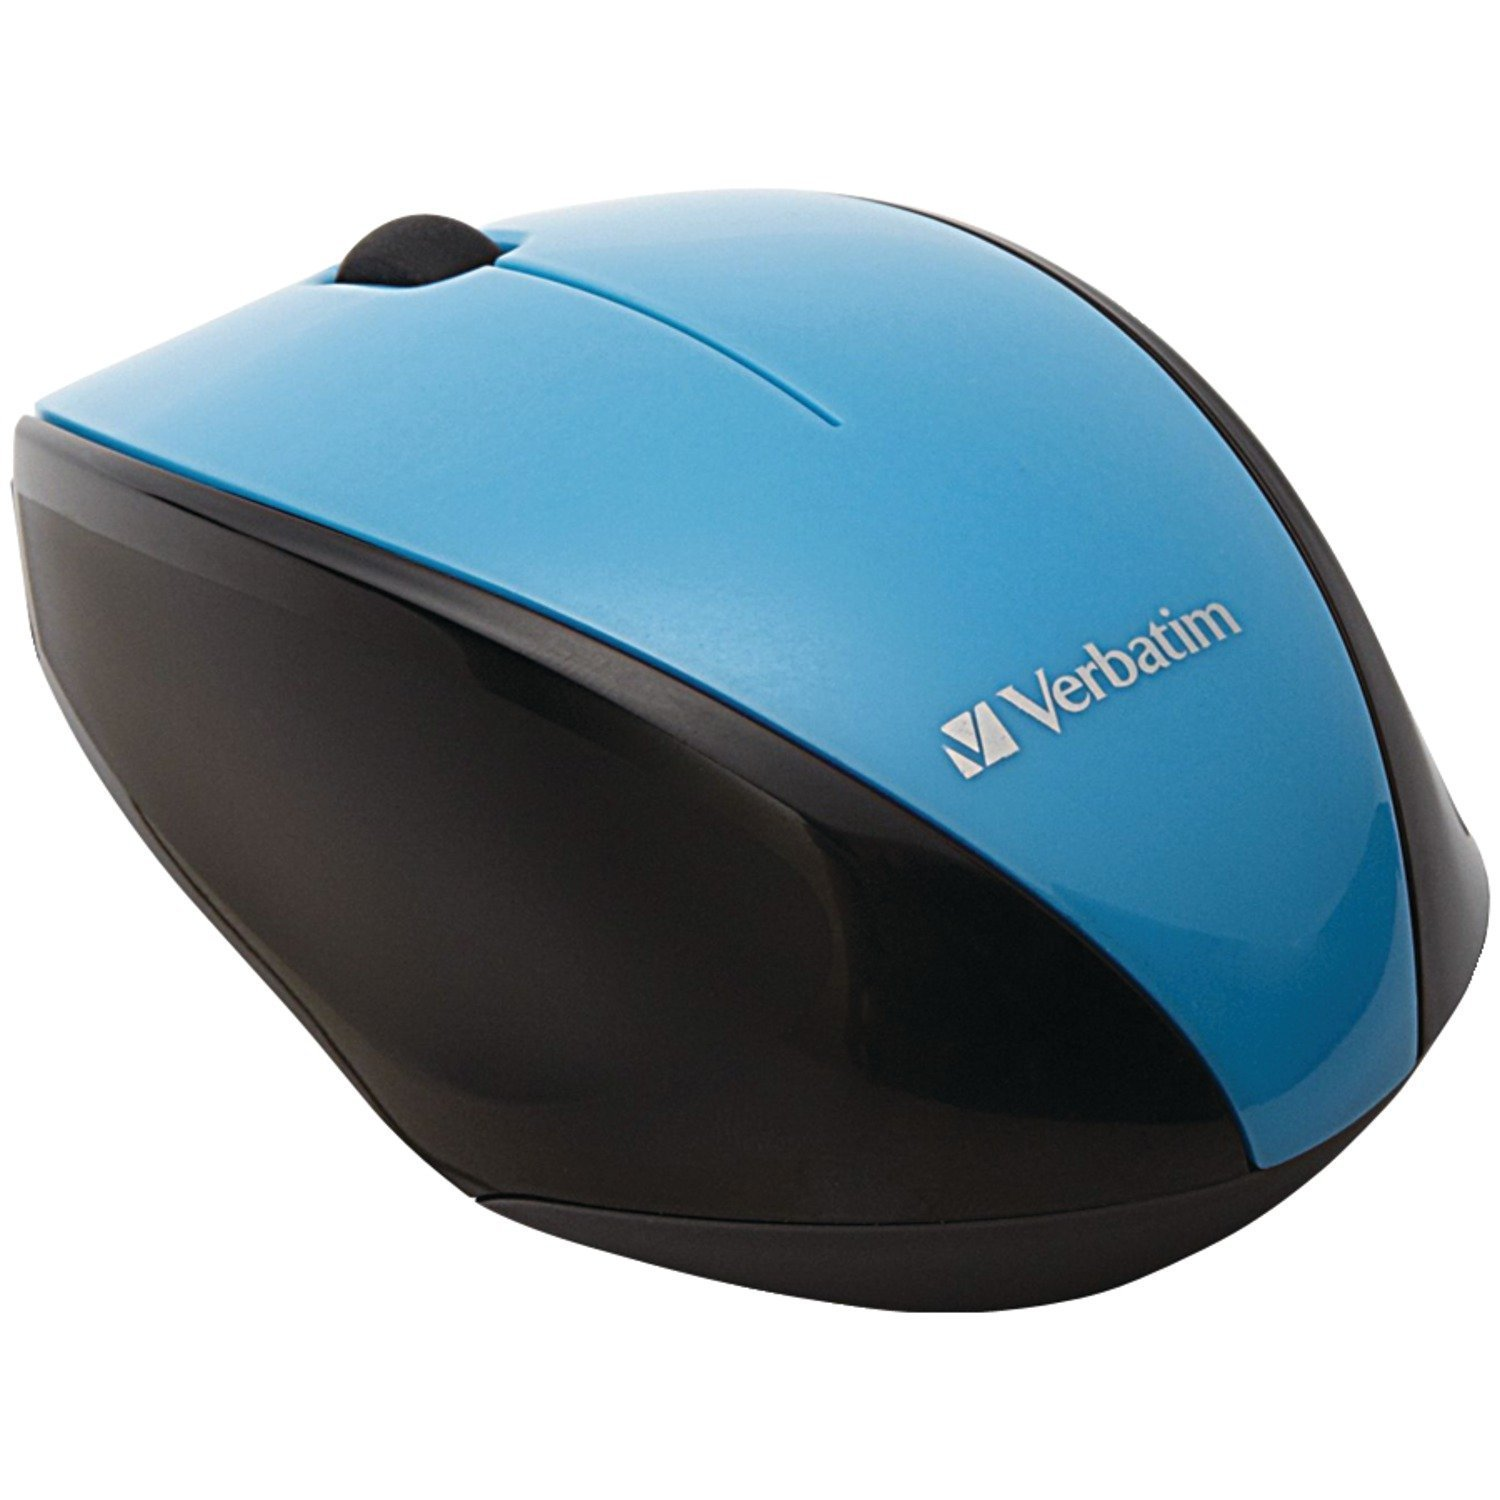 Computer Wireless Mouse, Blue Travel Portable Mini Usb Optical Wireless Mouse